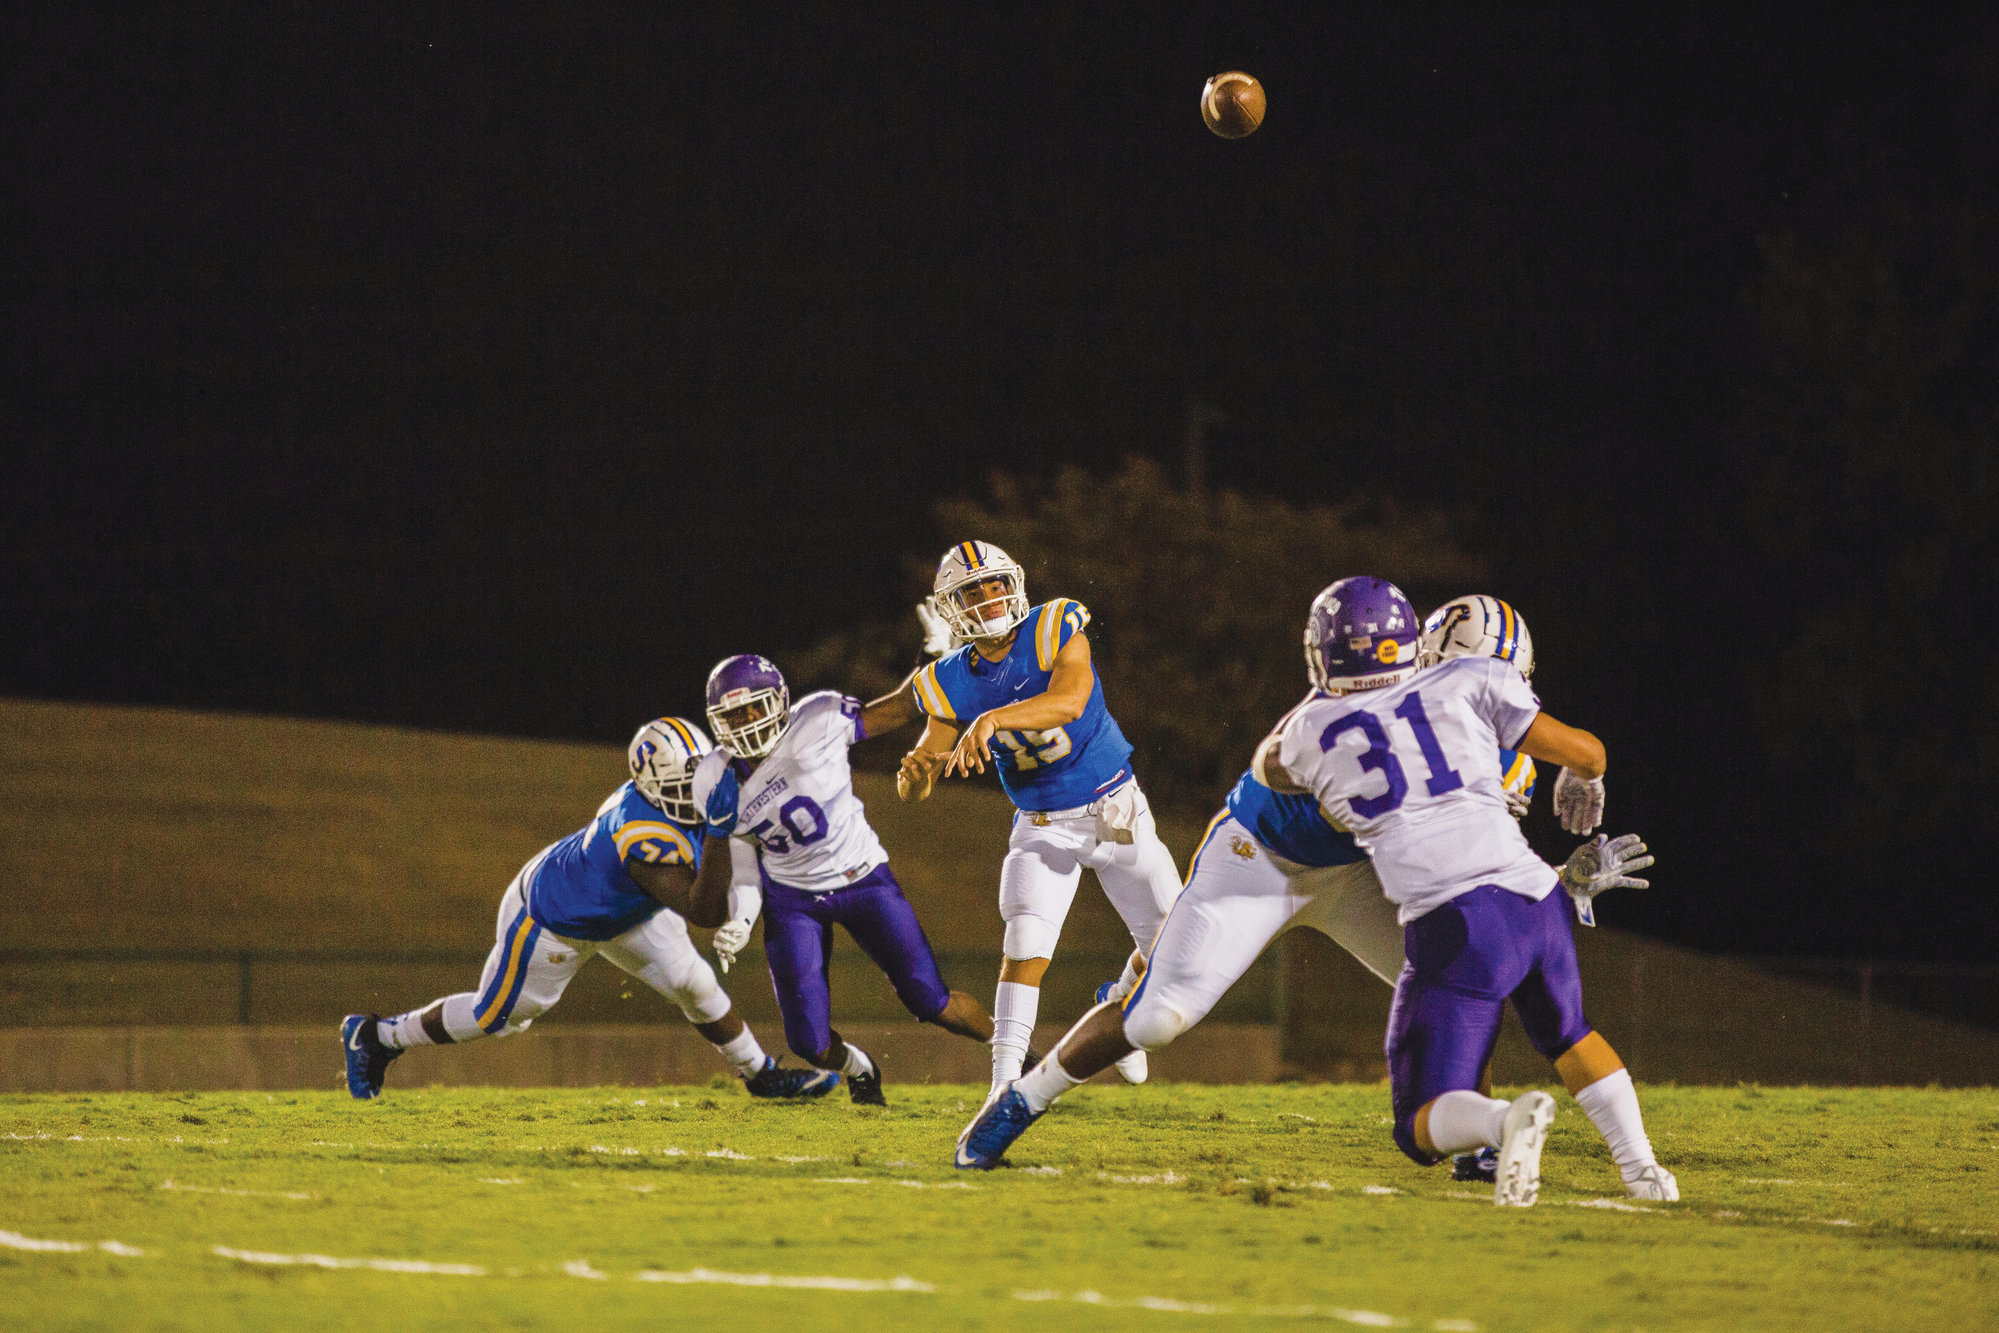 Sumter quarterback Hayden Vasquez, center, will look to keep the high-powered Gamecock offense clicking as they play host Lugoff-Elgin on Friday.